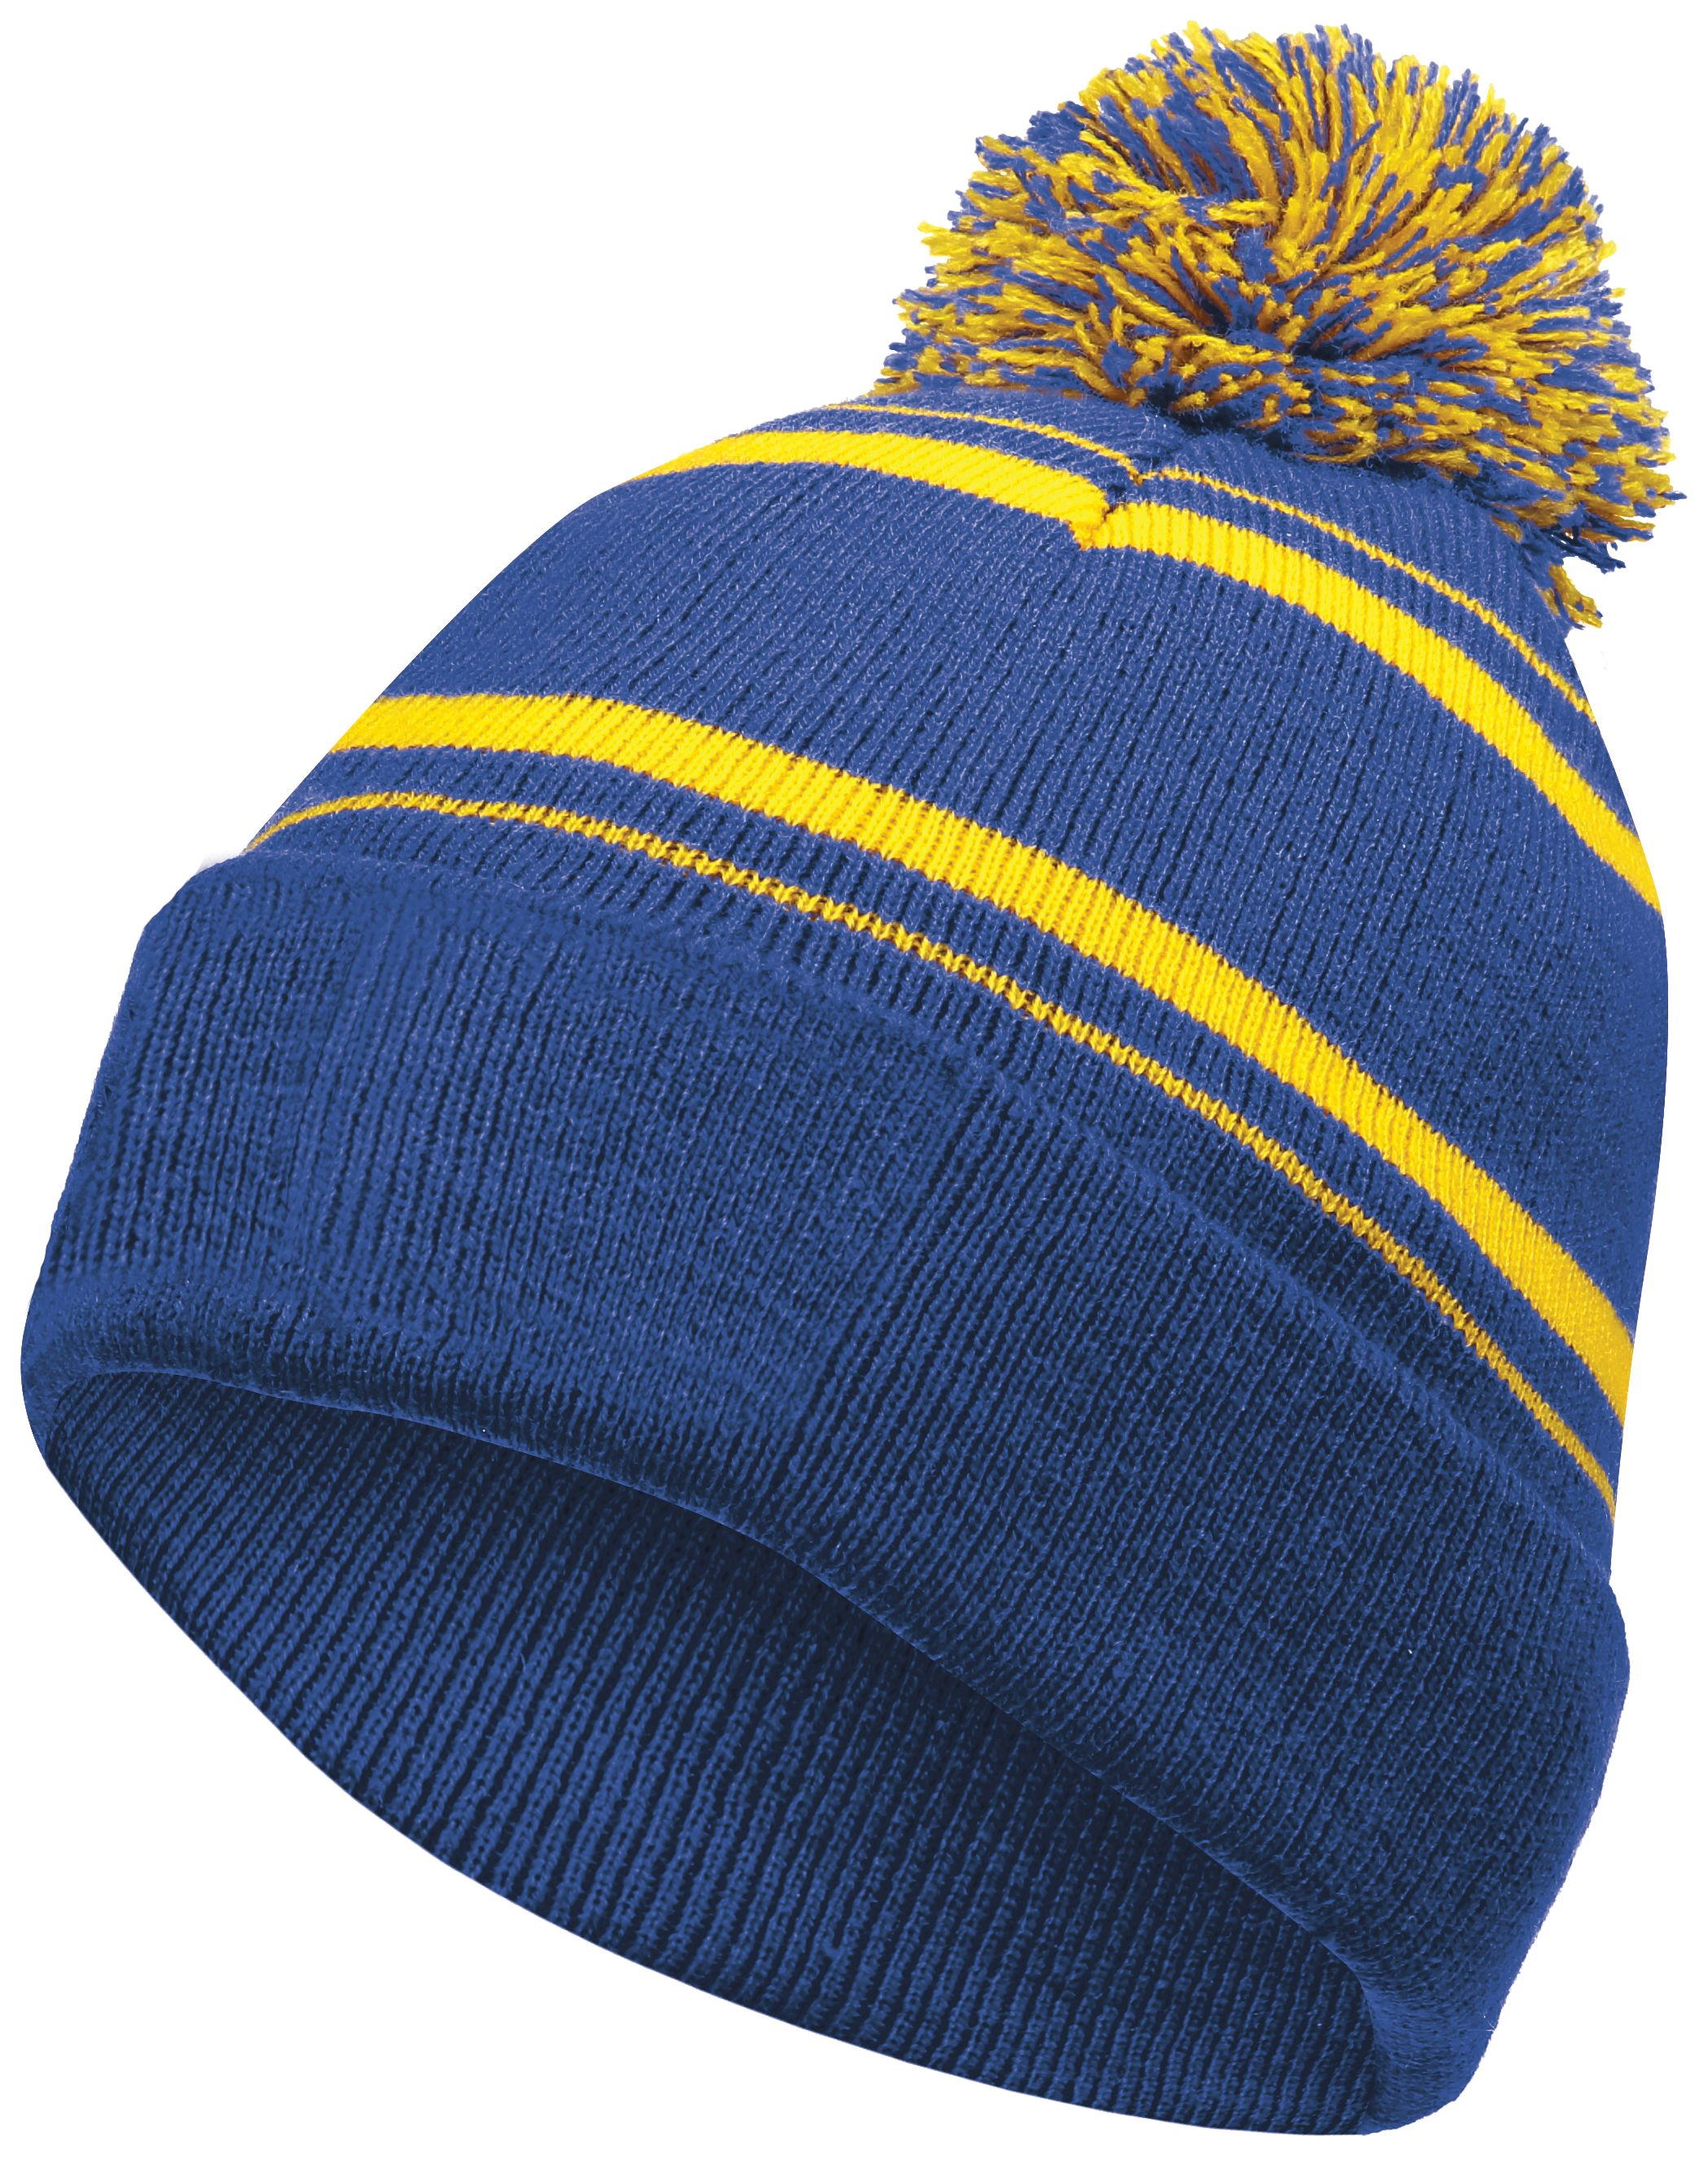 Homecoming Beanie - ROYAL/LIGHT GOLD